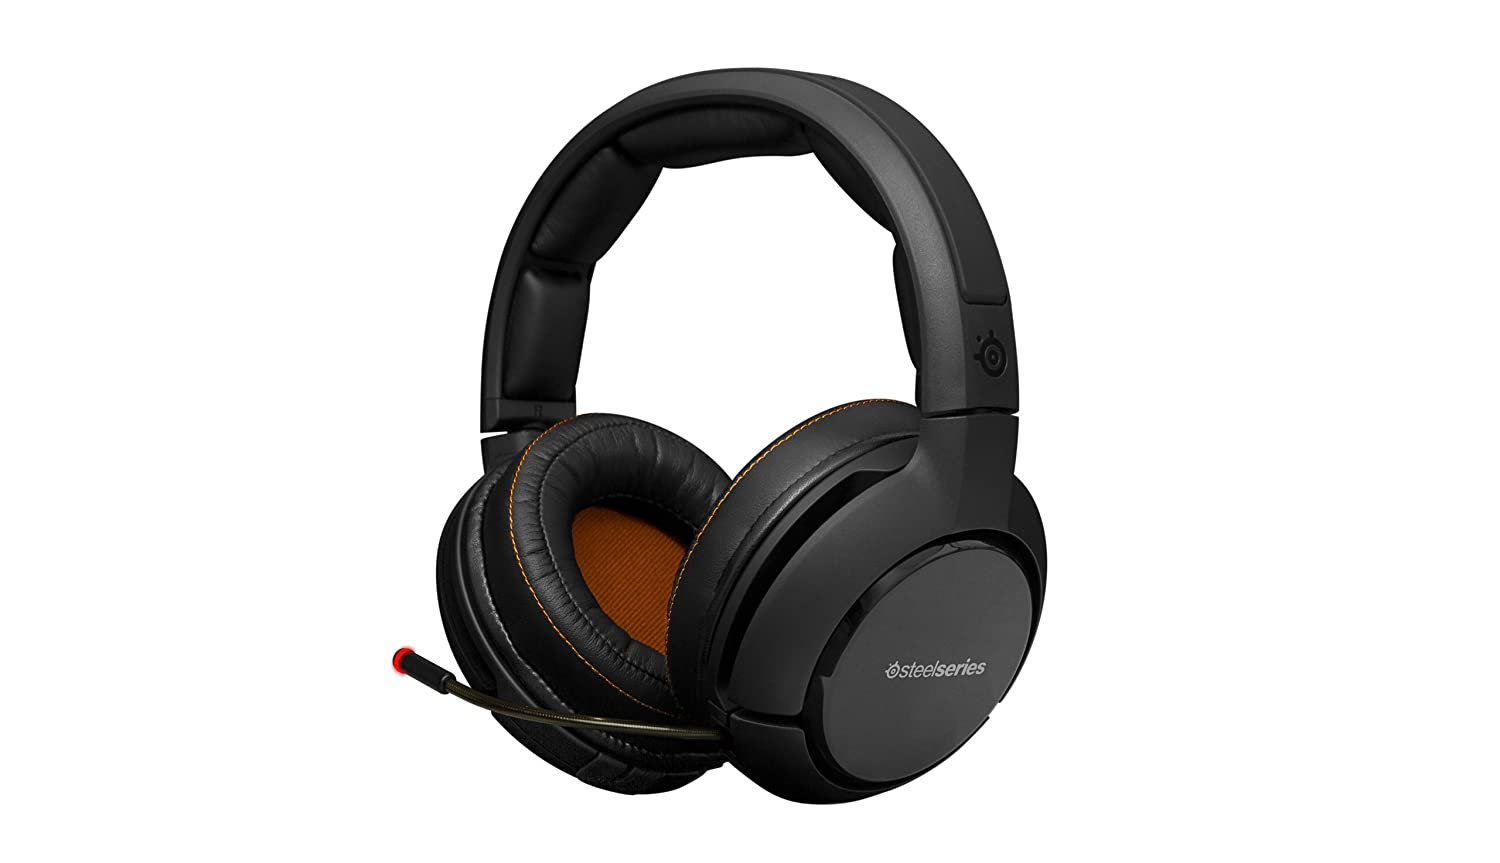 STEELSERIES H WIRELESS DRIVERS WINDOWS 7 (2019)